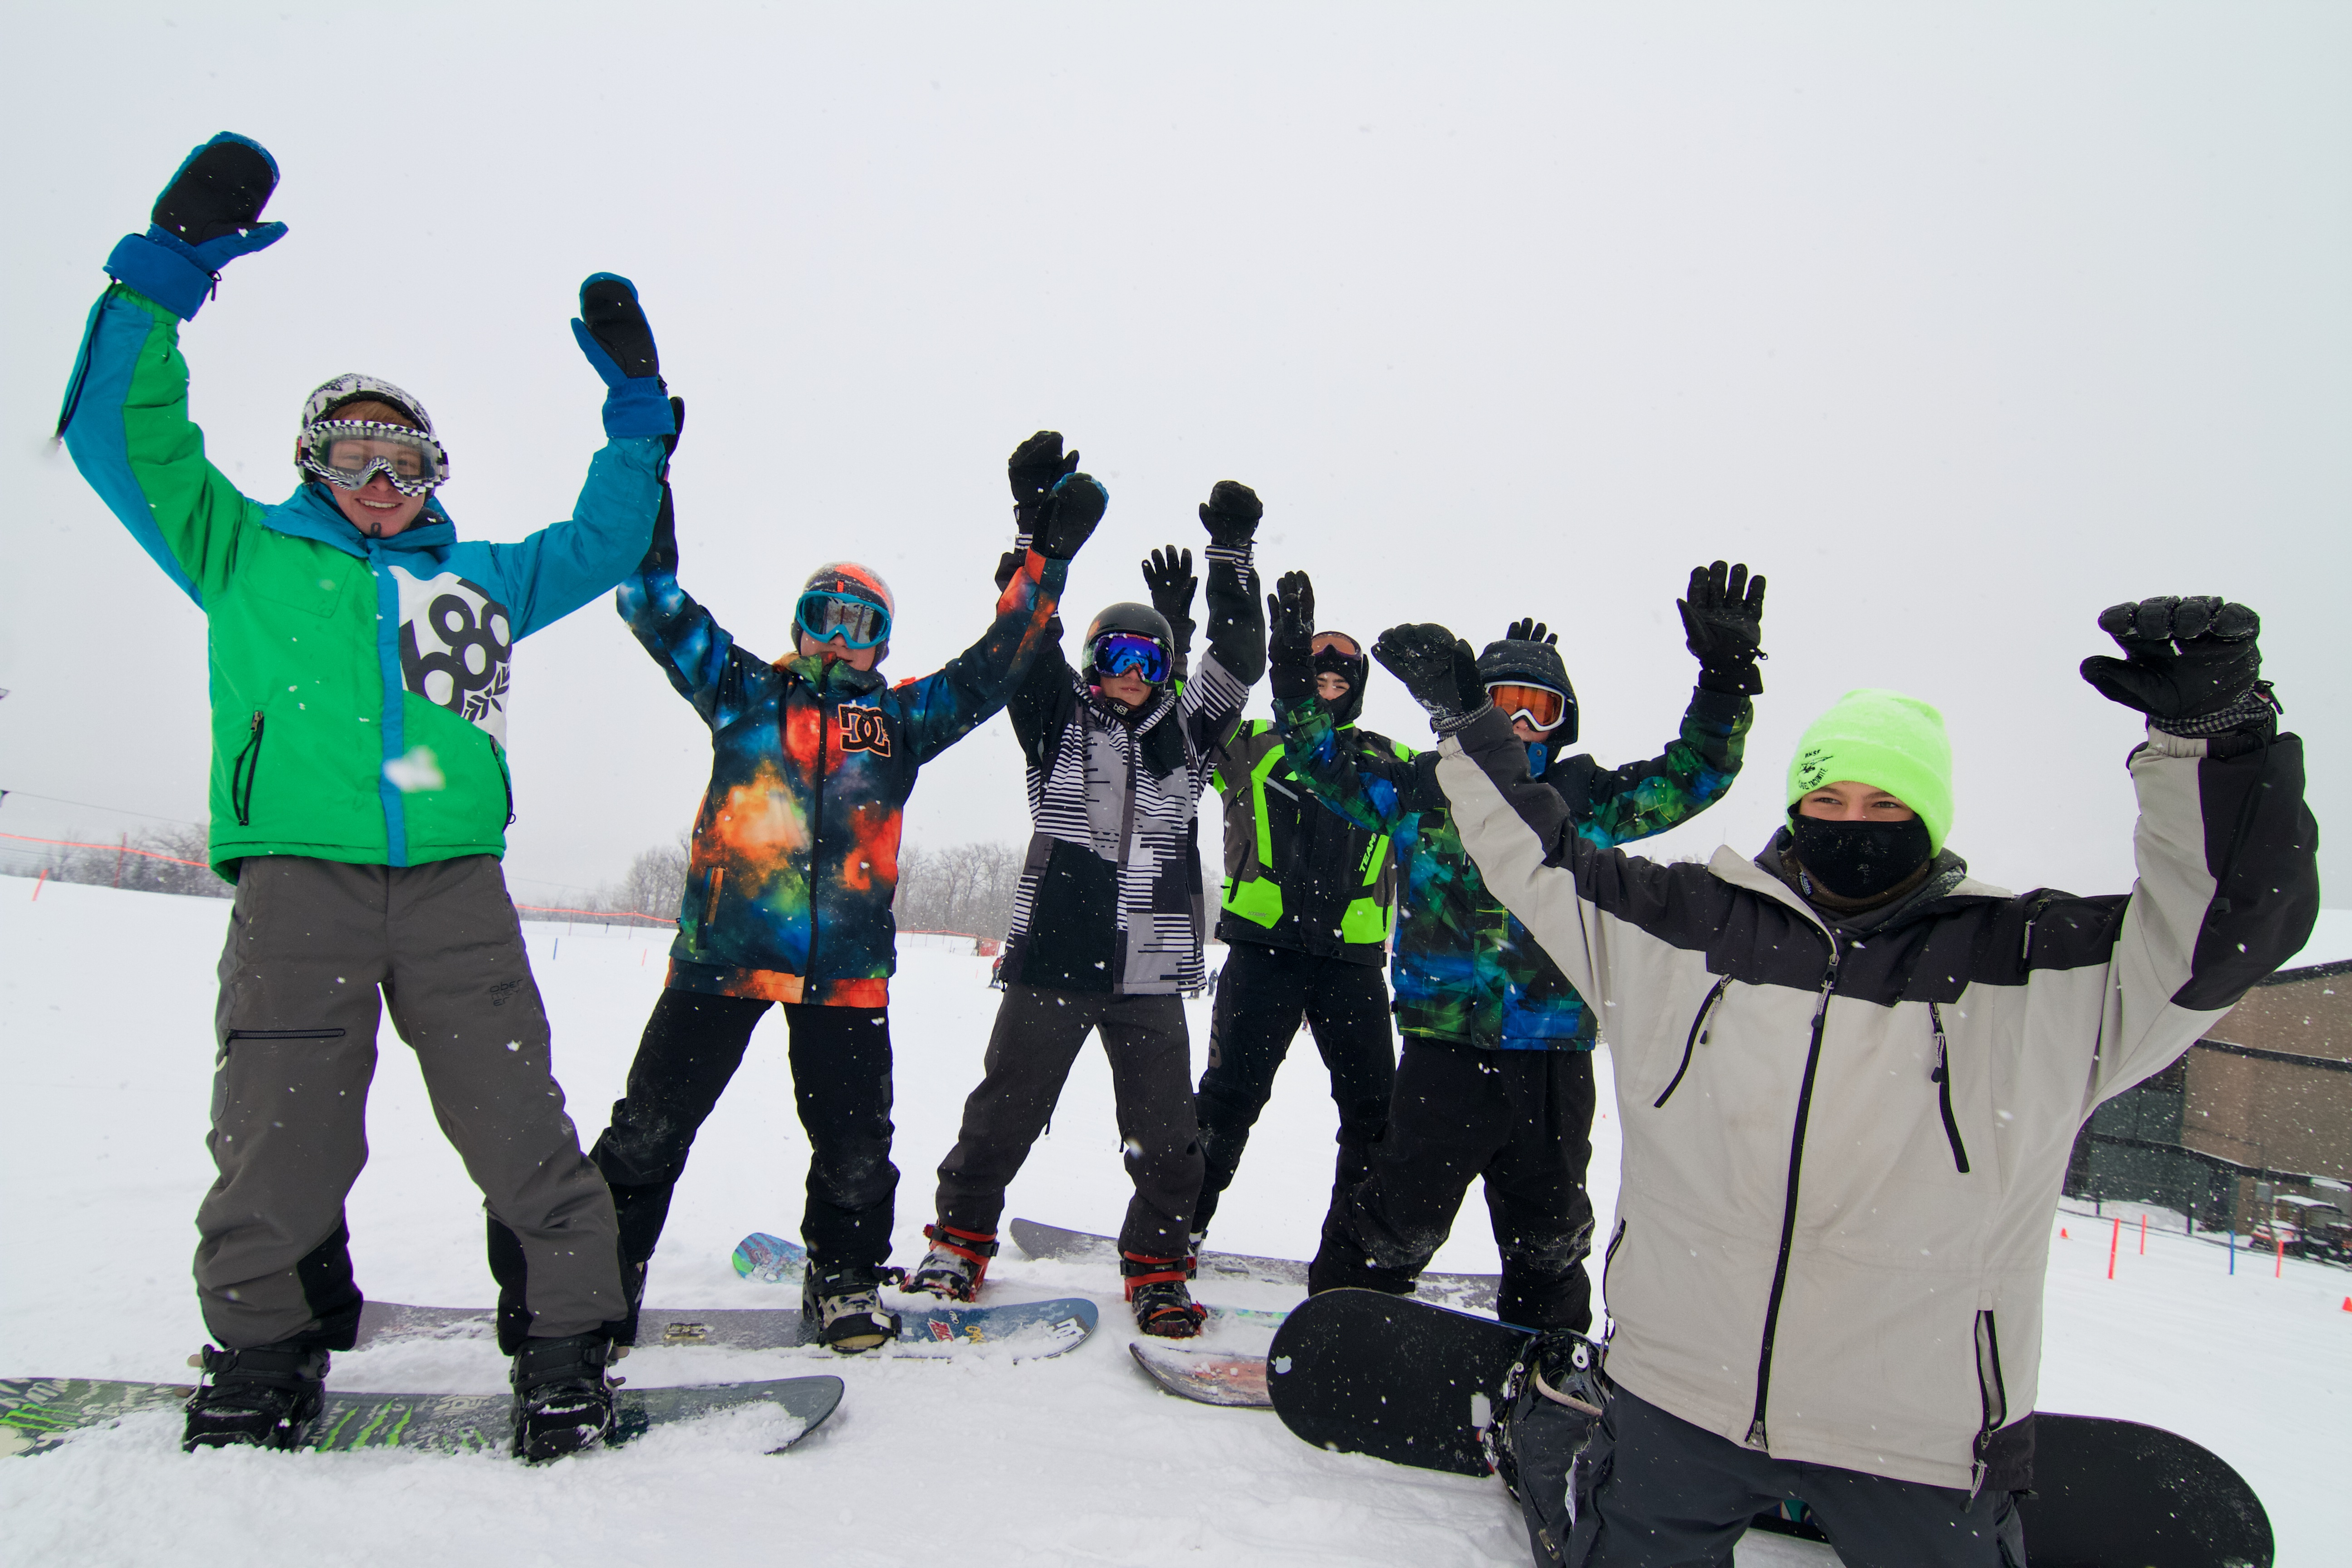 6 boys on snowboards with their hands up